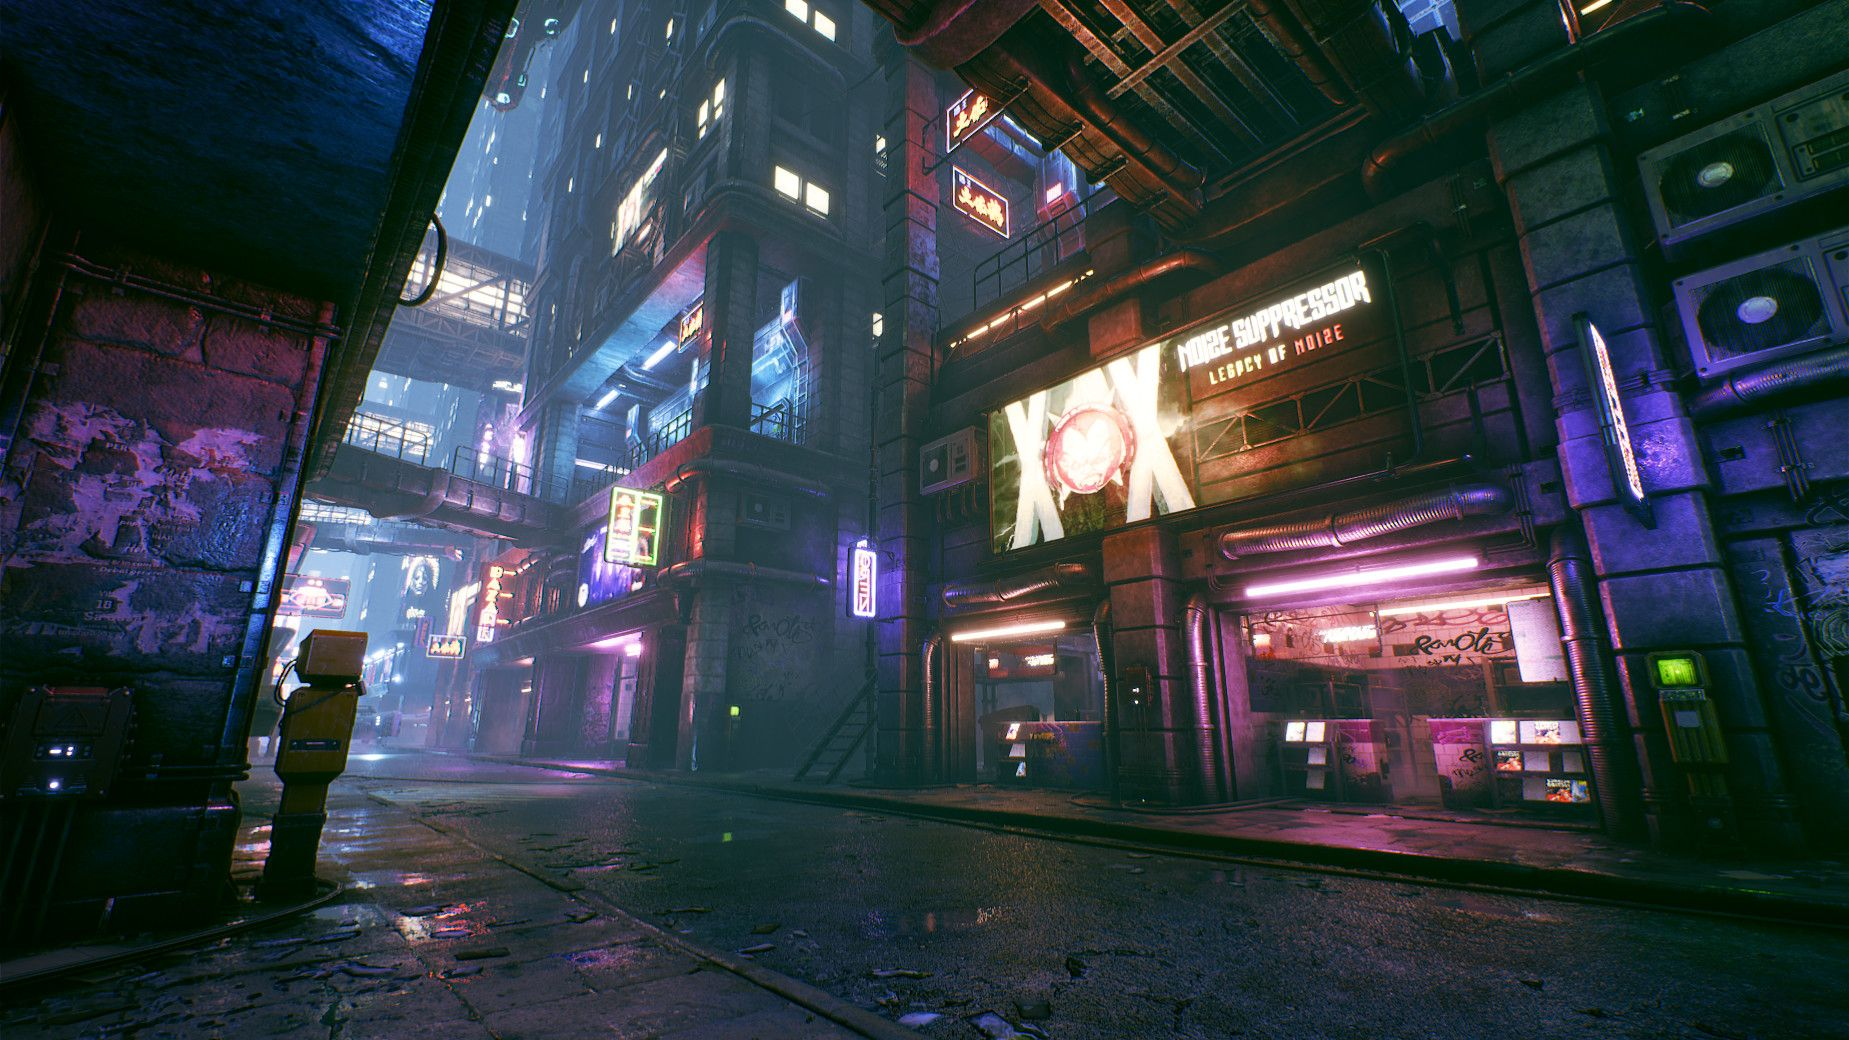 cyberpunk city alley unreal engine   short cinematic  youtube httpswwwyoutubecom